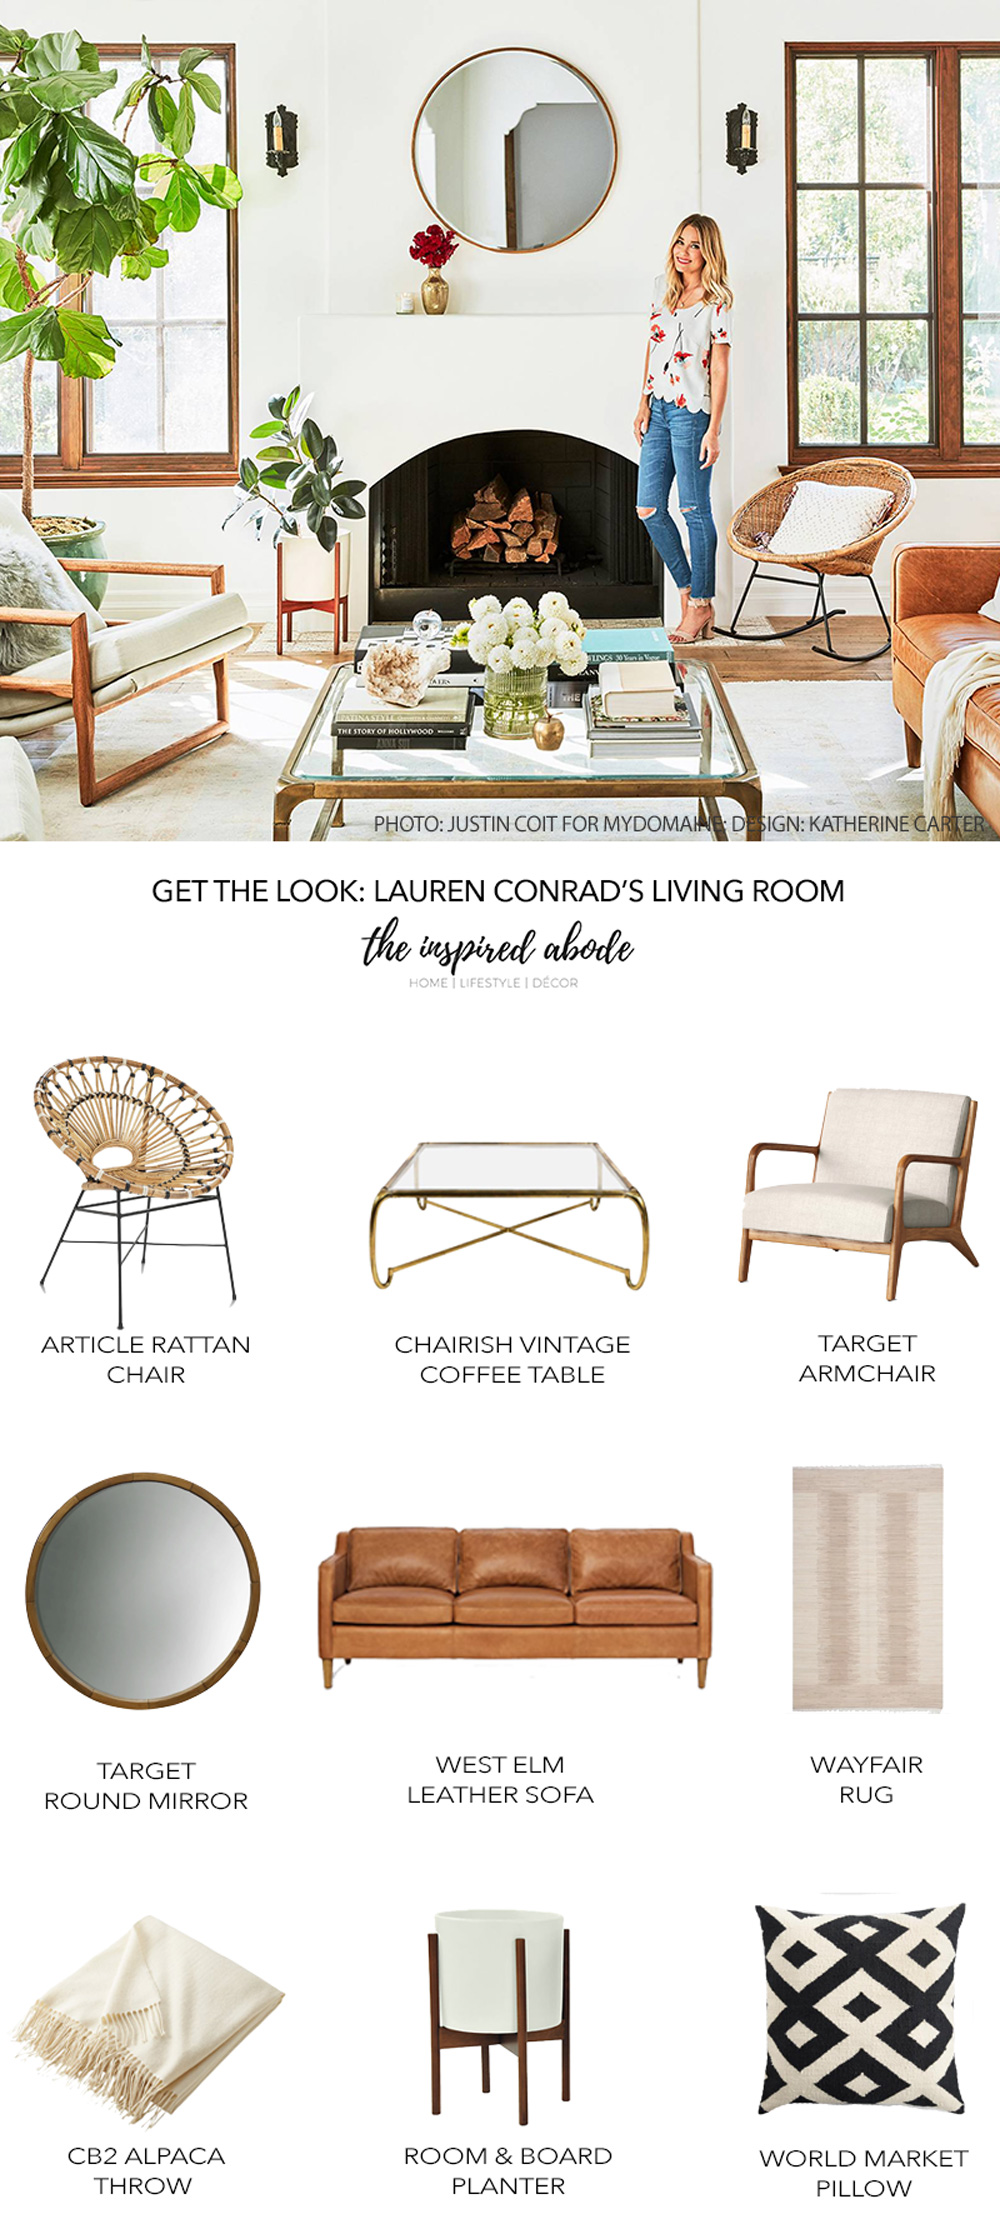 Get the Look: Lauren Conrad's California-Cool Living Room in the Pacific Palisades